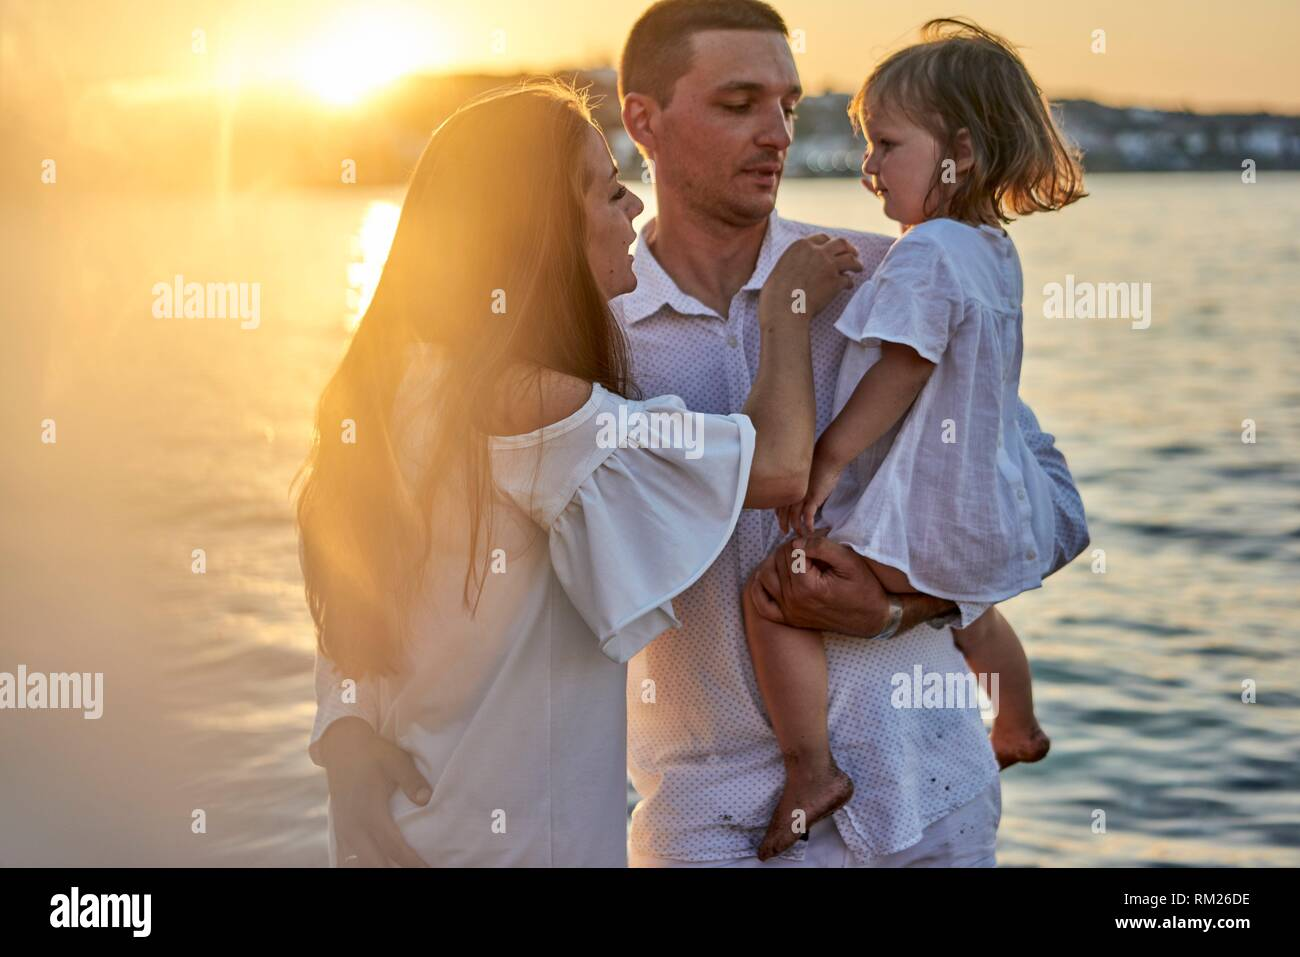 family, parenthood, sunset, candid, unposed, real people. In Chersonissos, Crete, Greece - Stock Image